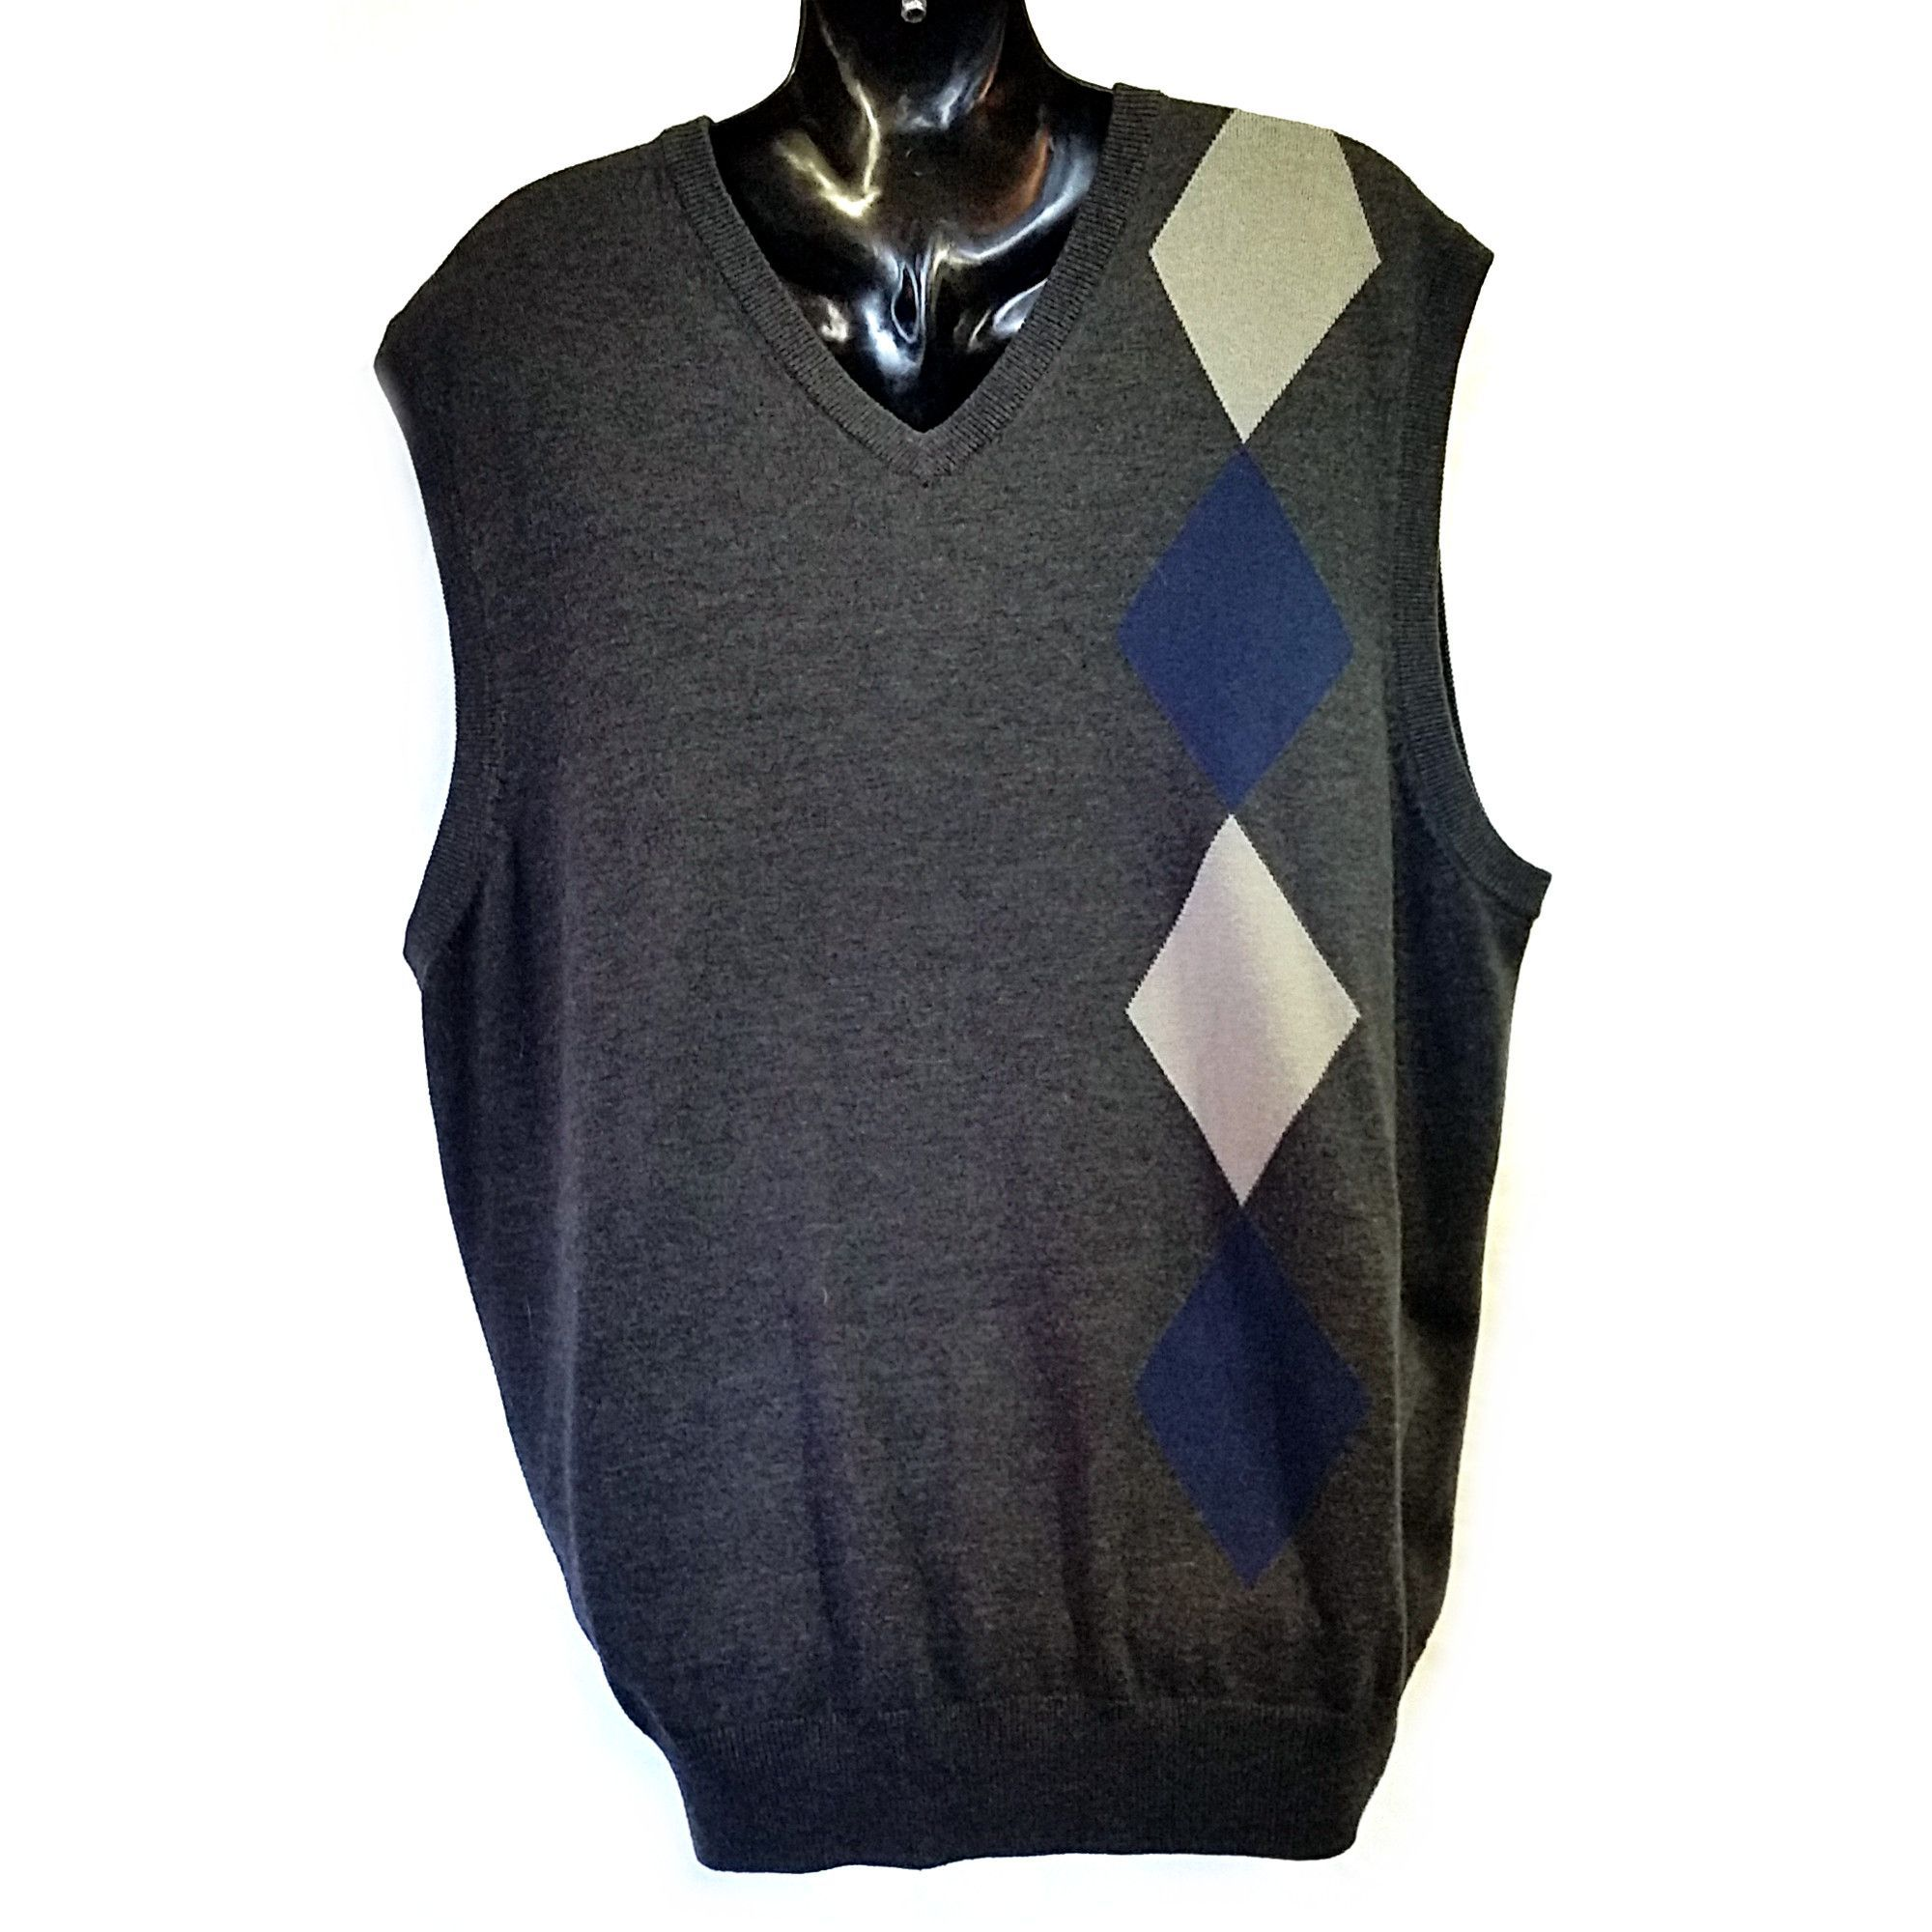 Gray Argyle Sweater Vest Mens XXL Axist Business f201 | Sweater ...